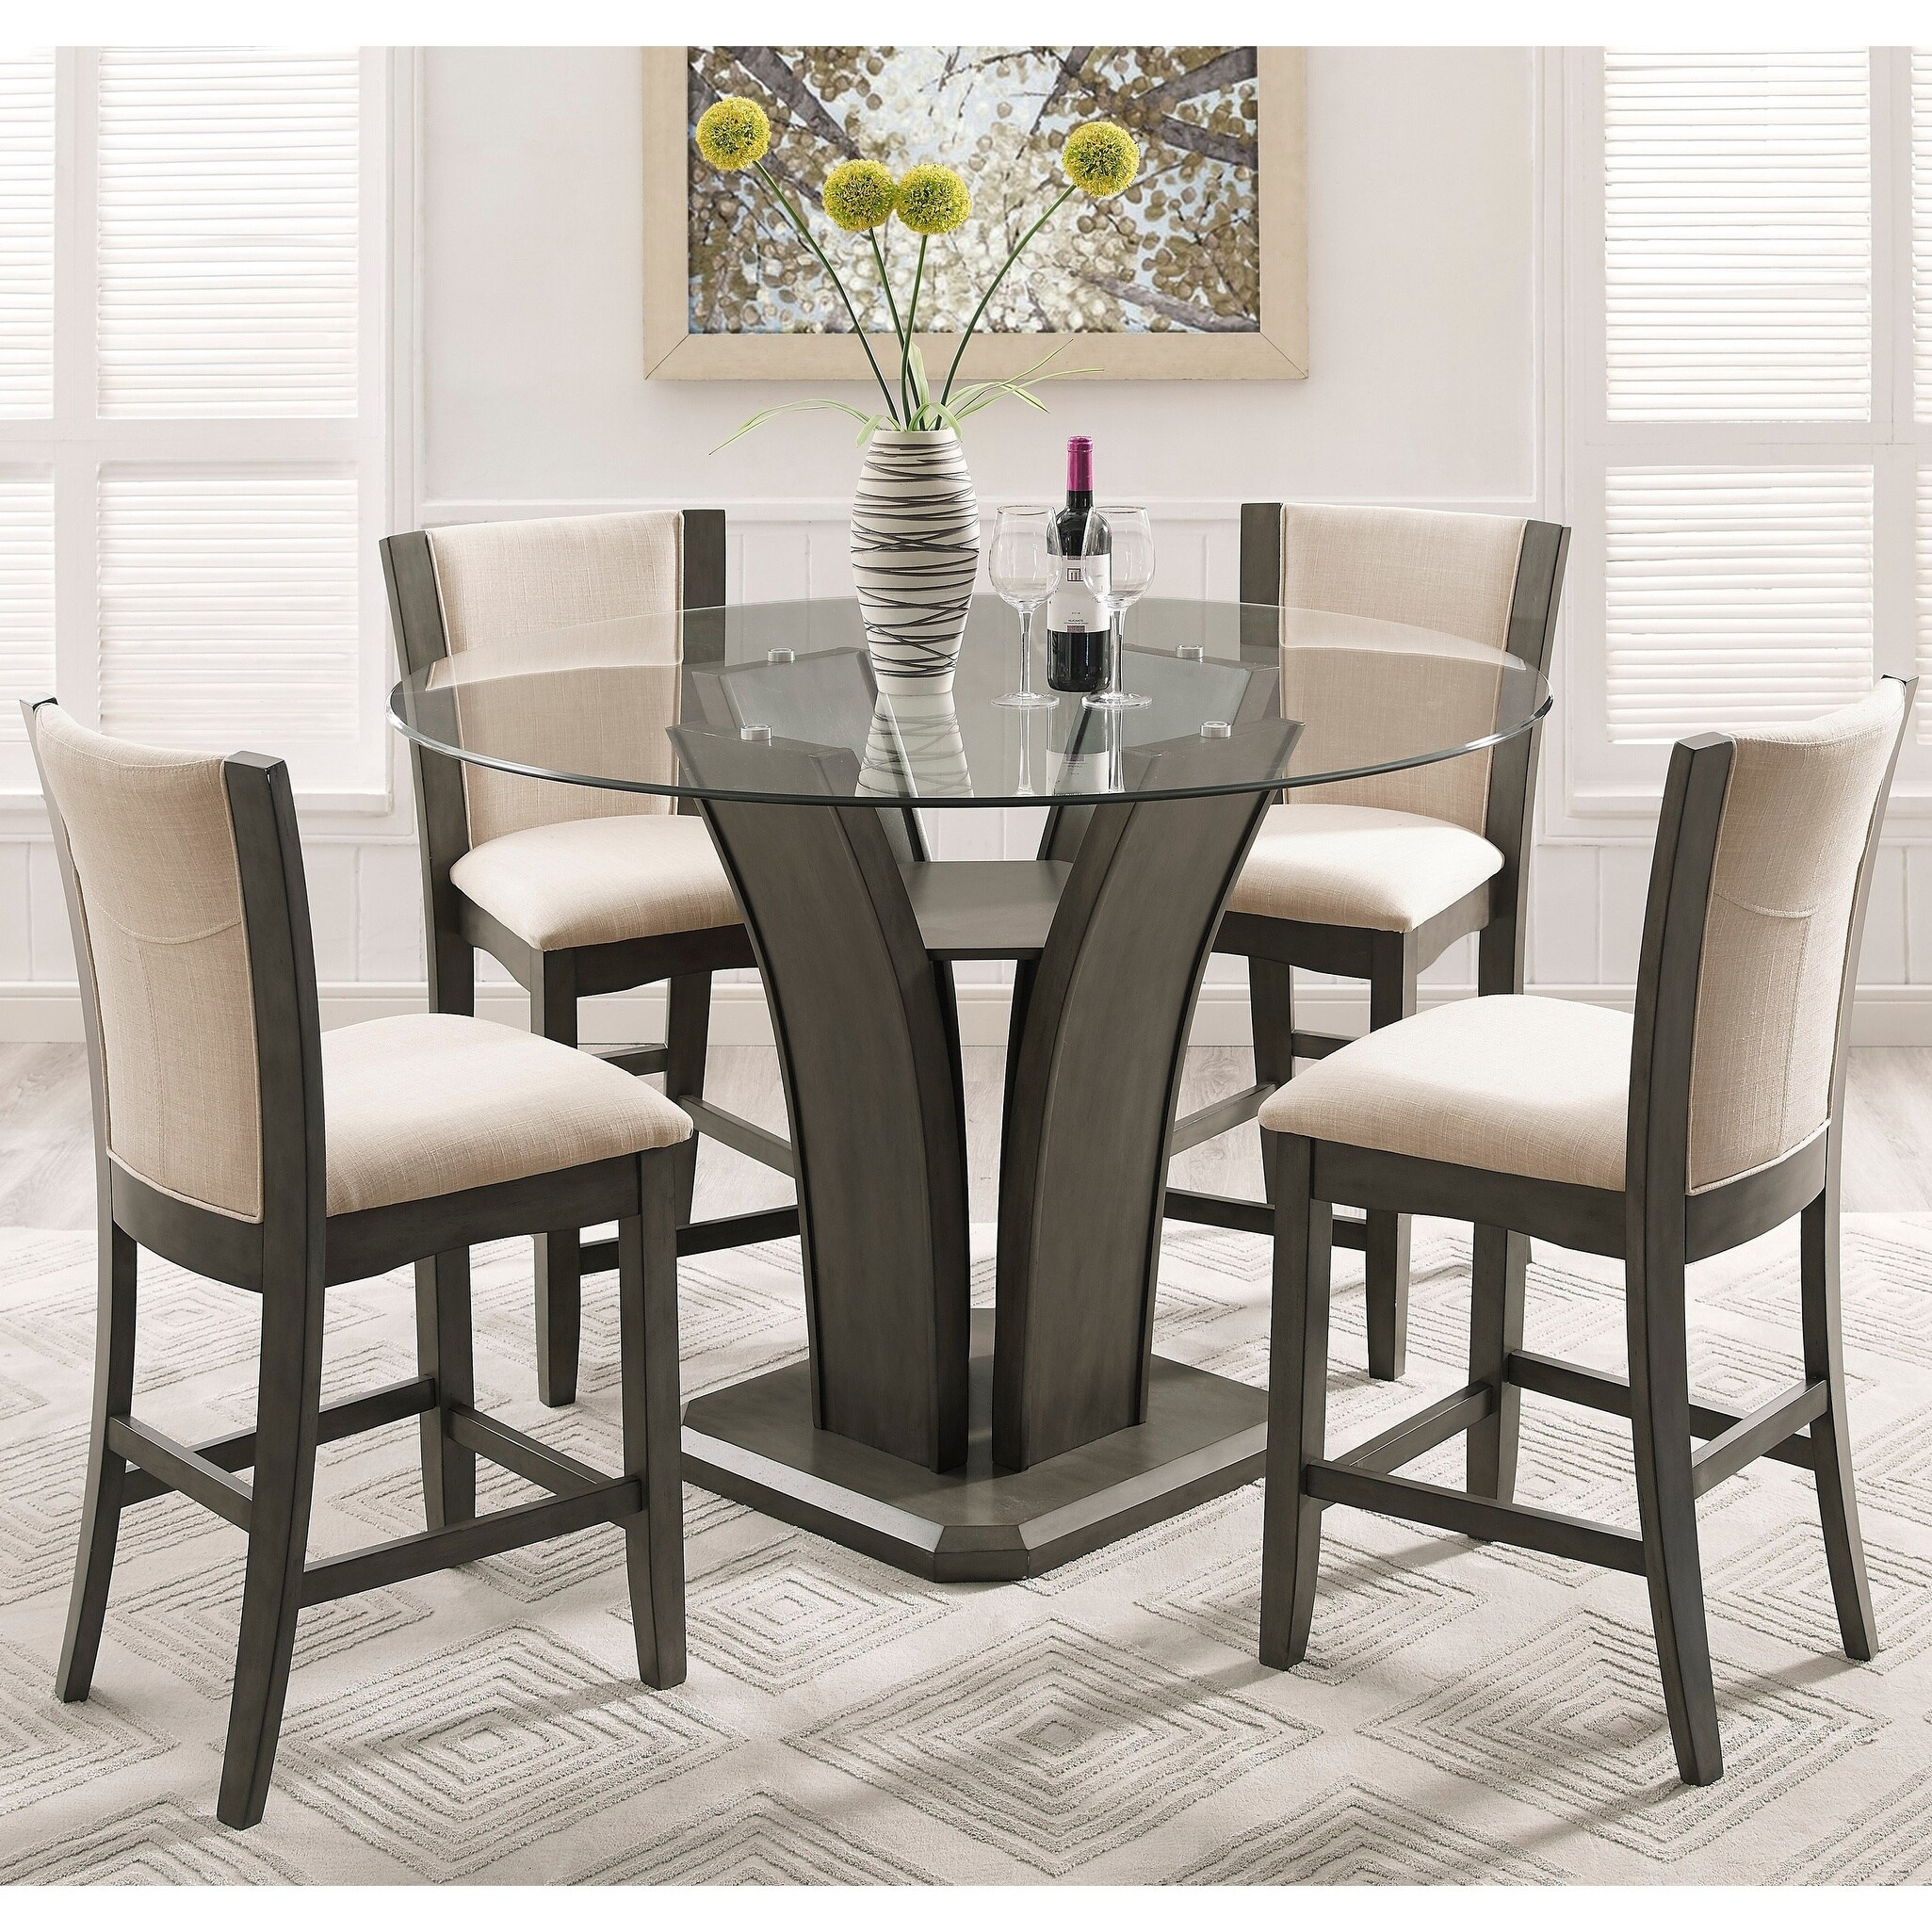 Shop Kecco Gray 5 Piece Round Glass Top Counter Height Dining Set On Sale Overstock 16685521